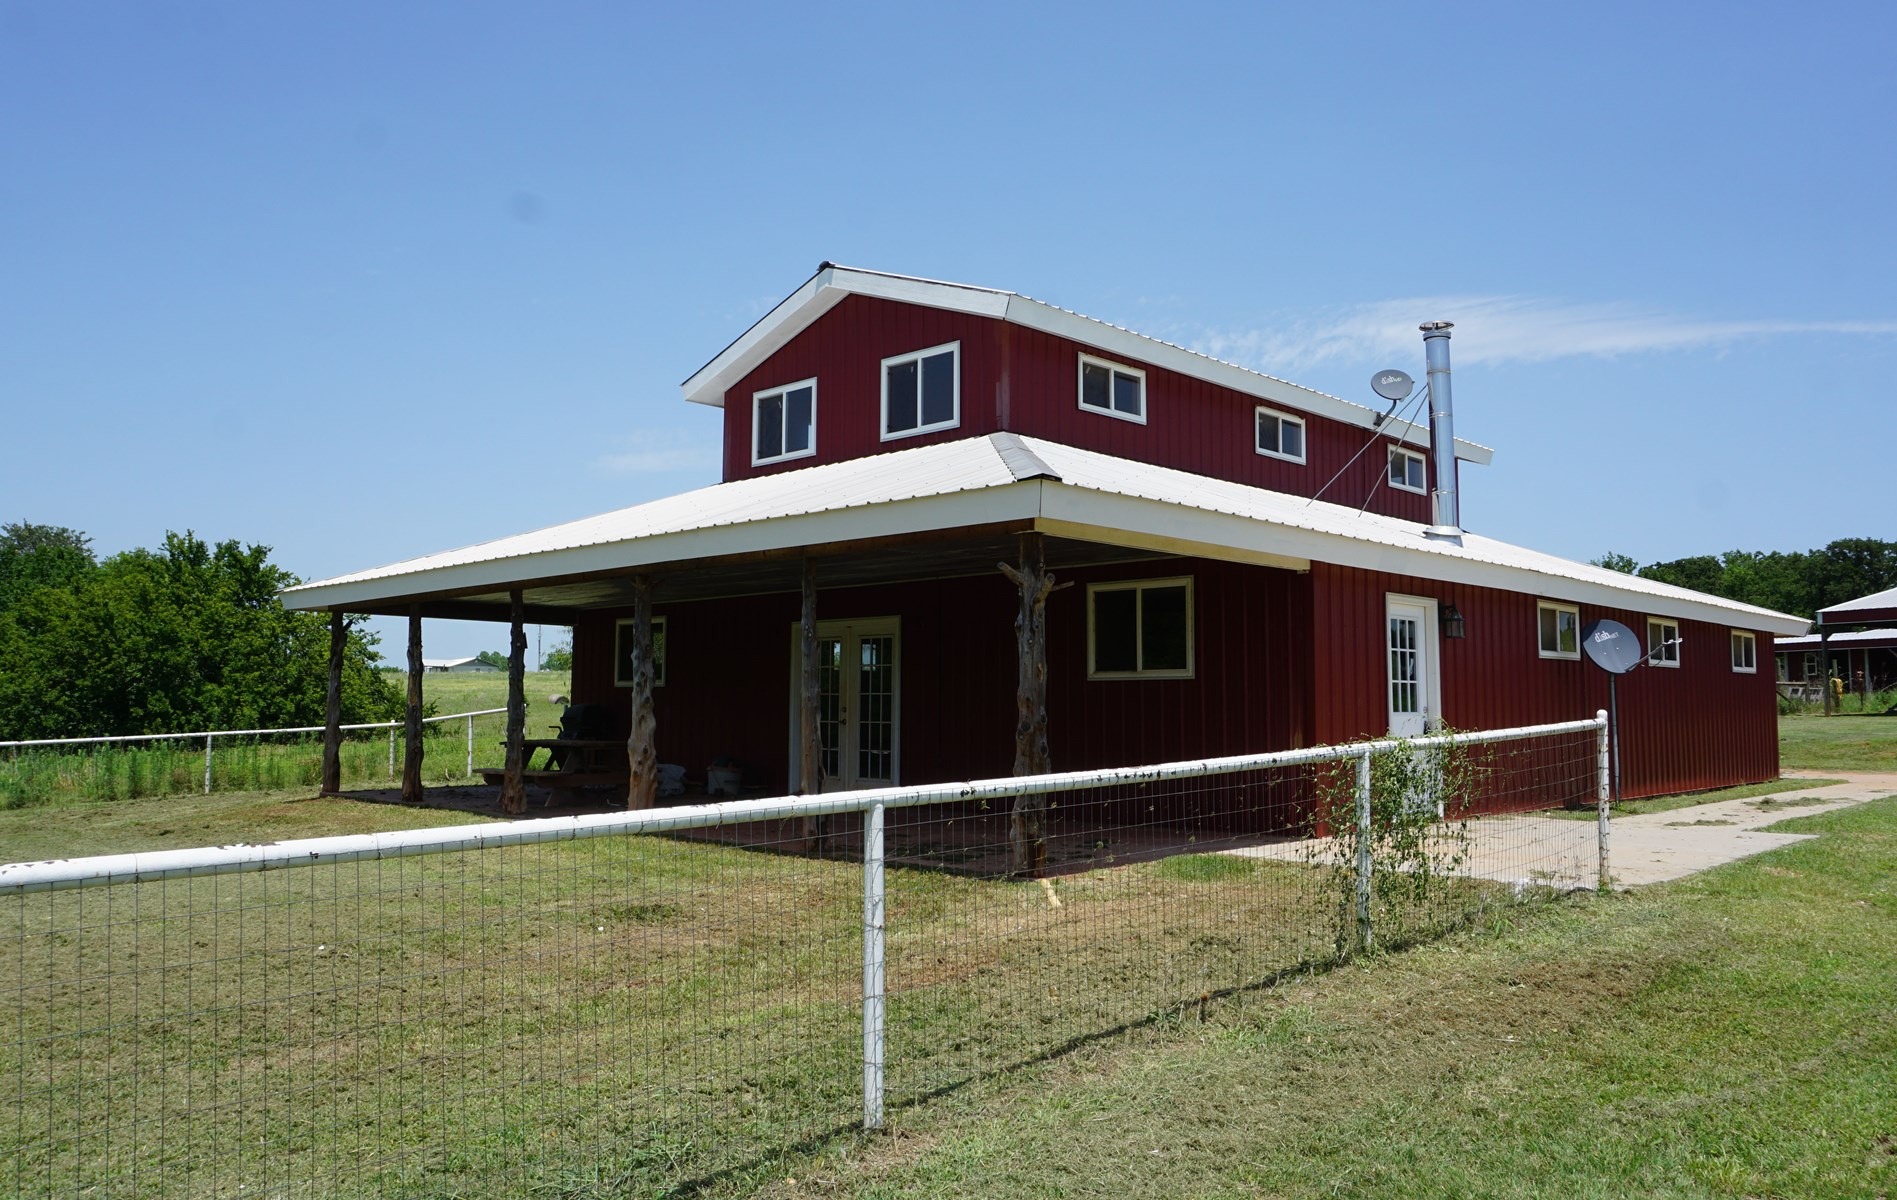 Livestock & Recreation Farm For Sale, Central Oklahoma